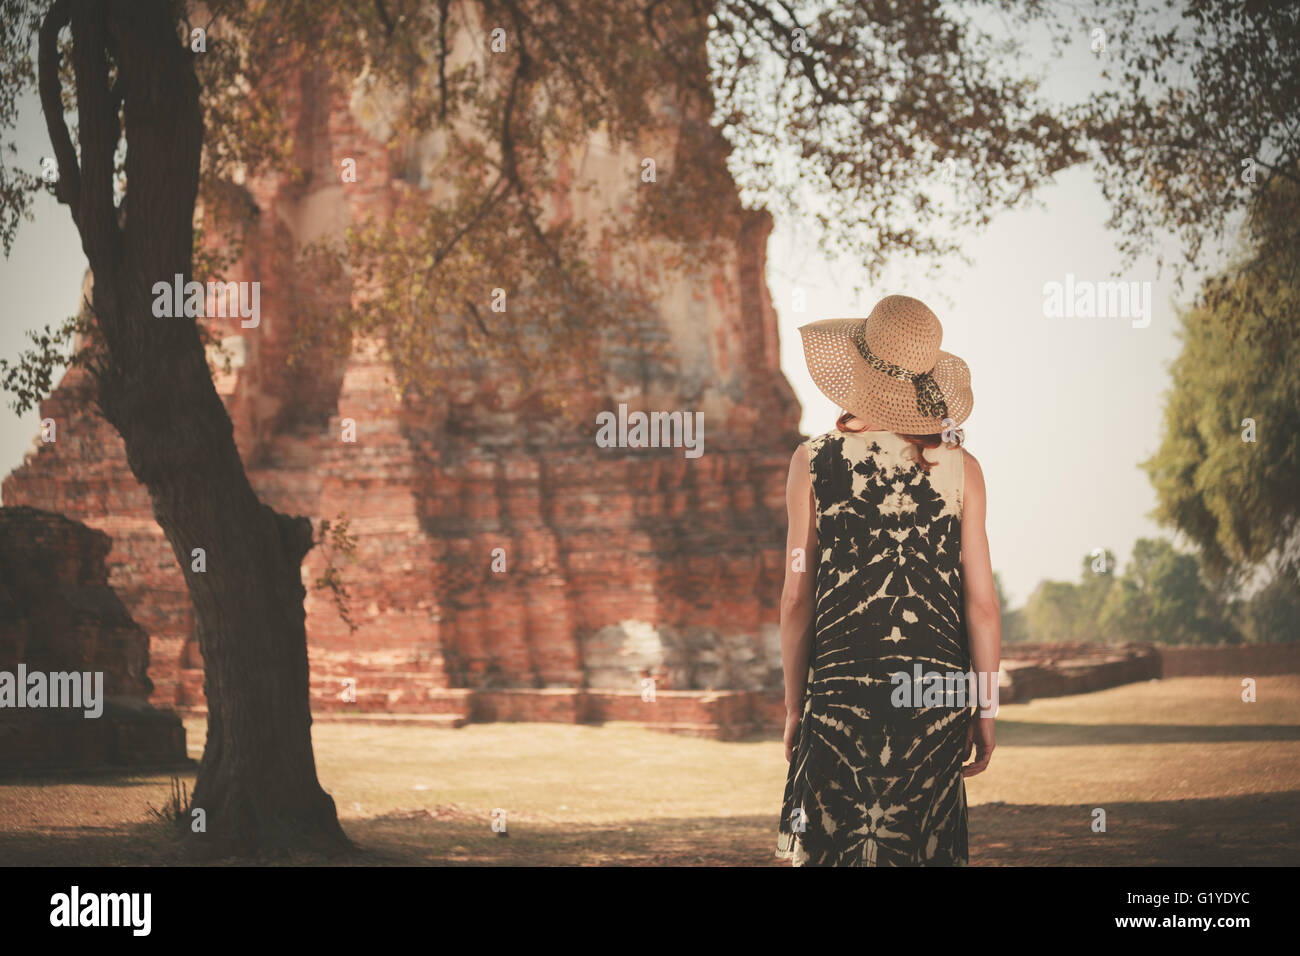 A young woman is exploring the ancient ruins of a buddhist temple city Stock Photo